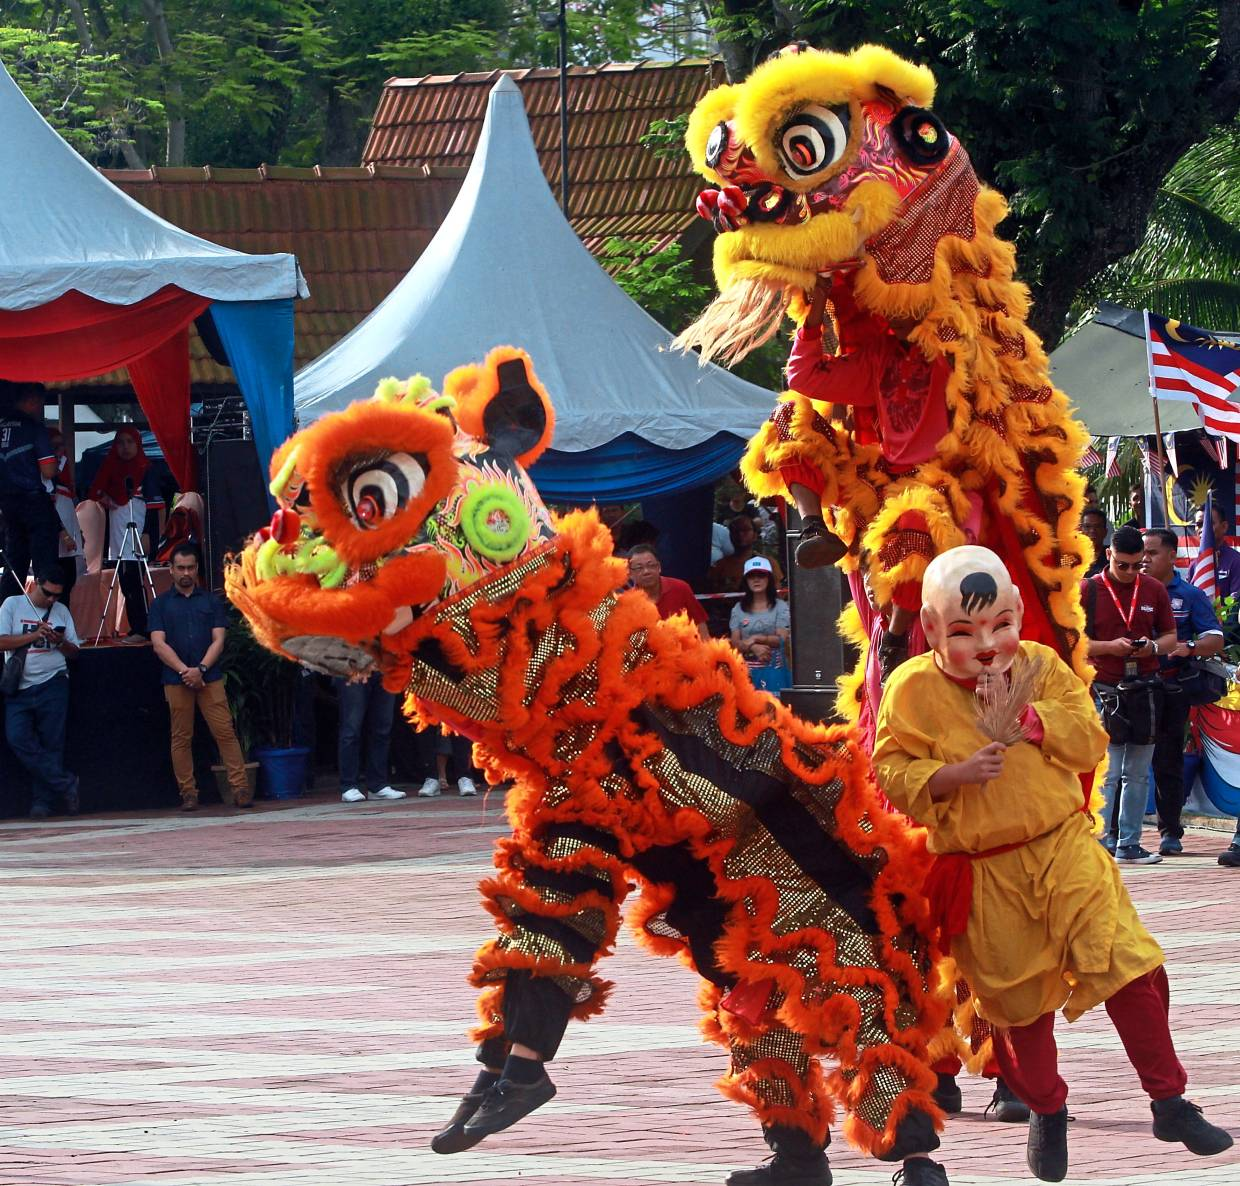 7 Steps To Rediscover Your Malaysian Identity On A Cultural Holiday The Star